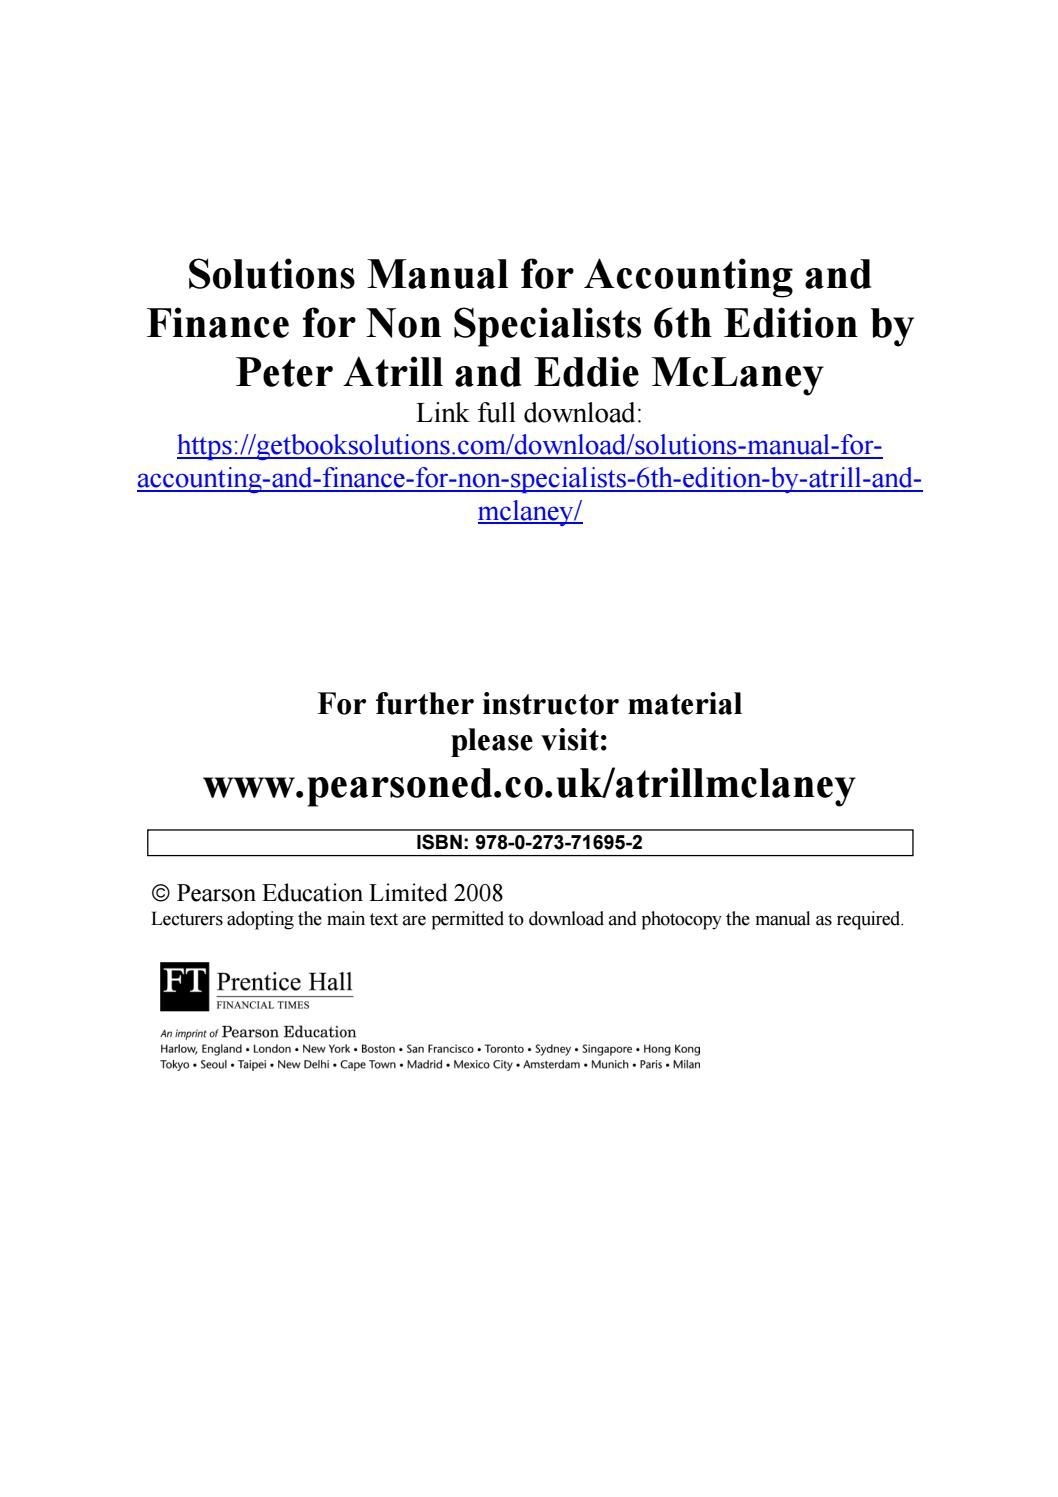 Solutions manual for accounting and finance for non specialists 6th edition  by atrill and mclaney